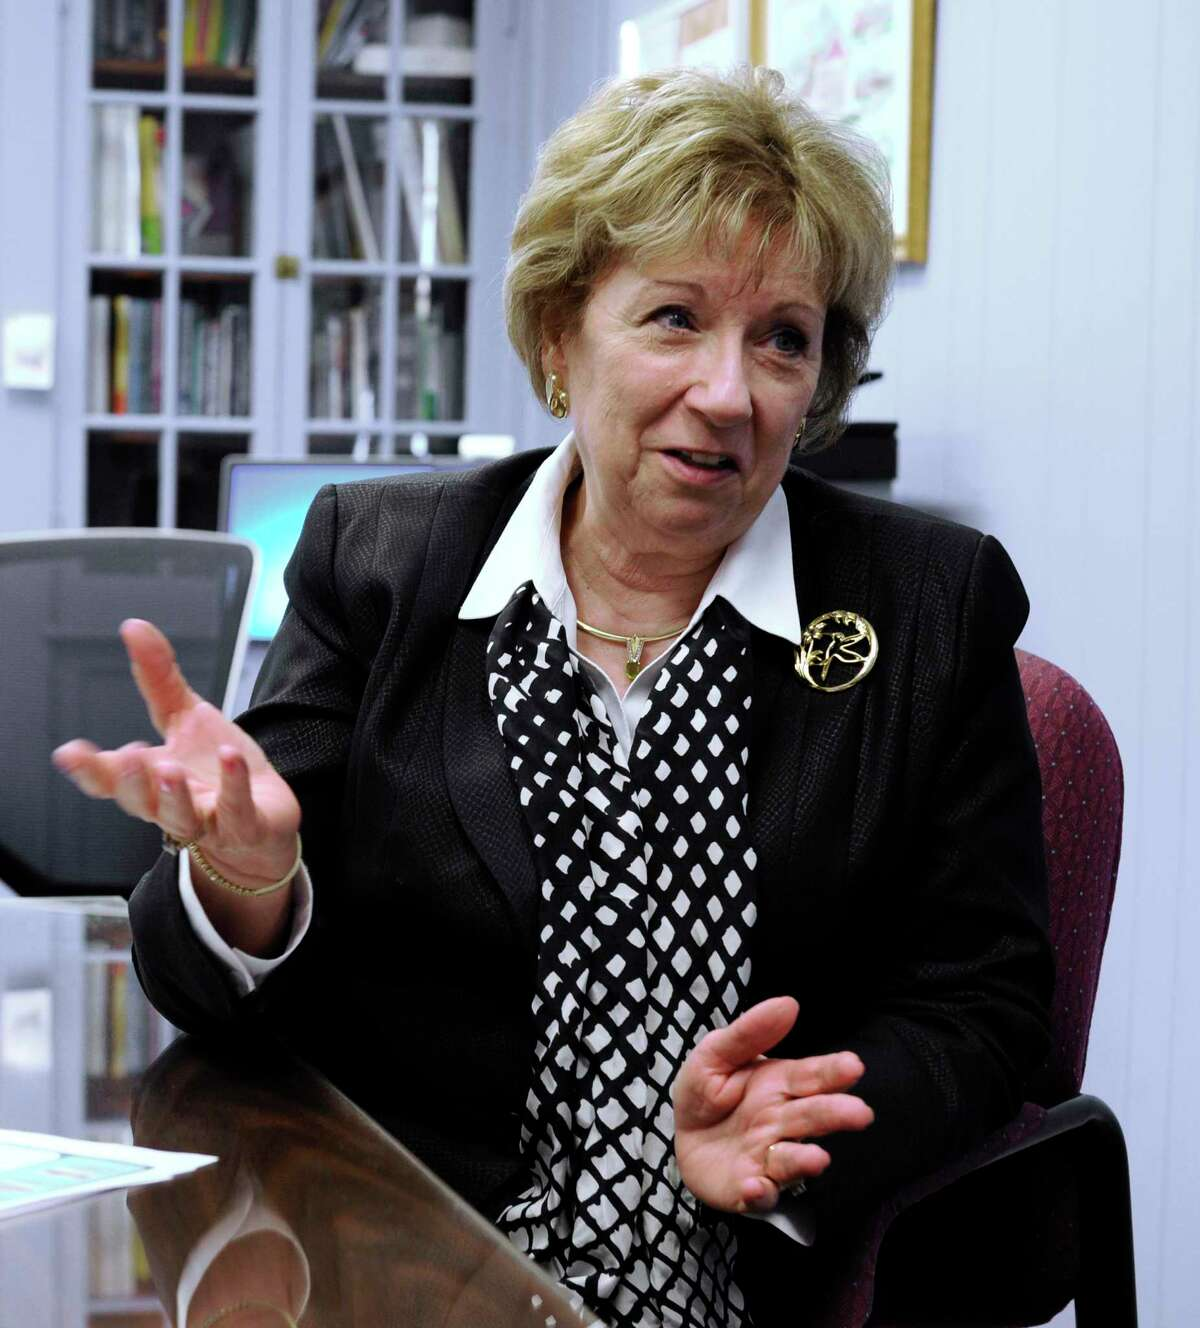 New Milford Superintendent of Schools, JeanAnn Paddyfote retires January 31 after decades with the school district. Paddyfote talks about her career in her office, Thursday, January 28, 2016.